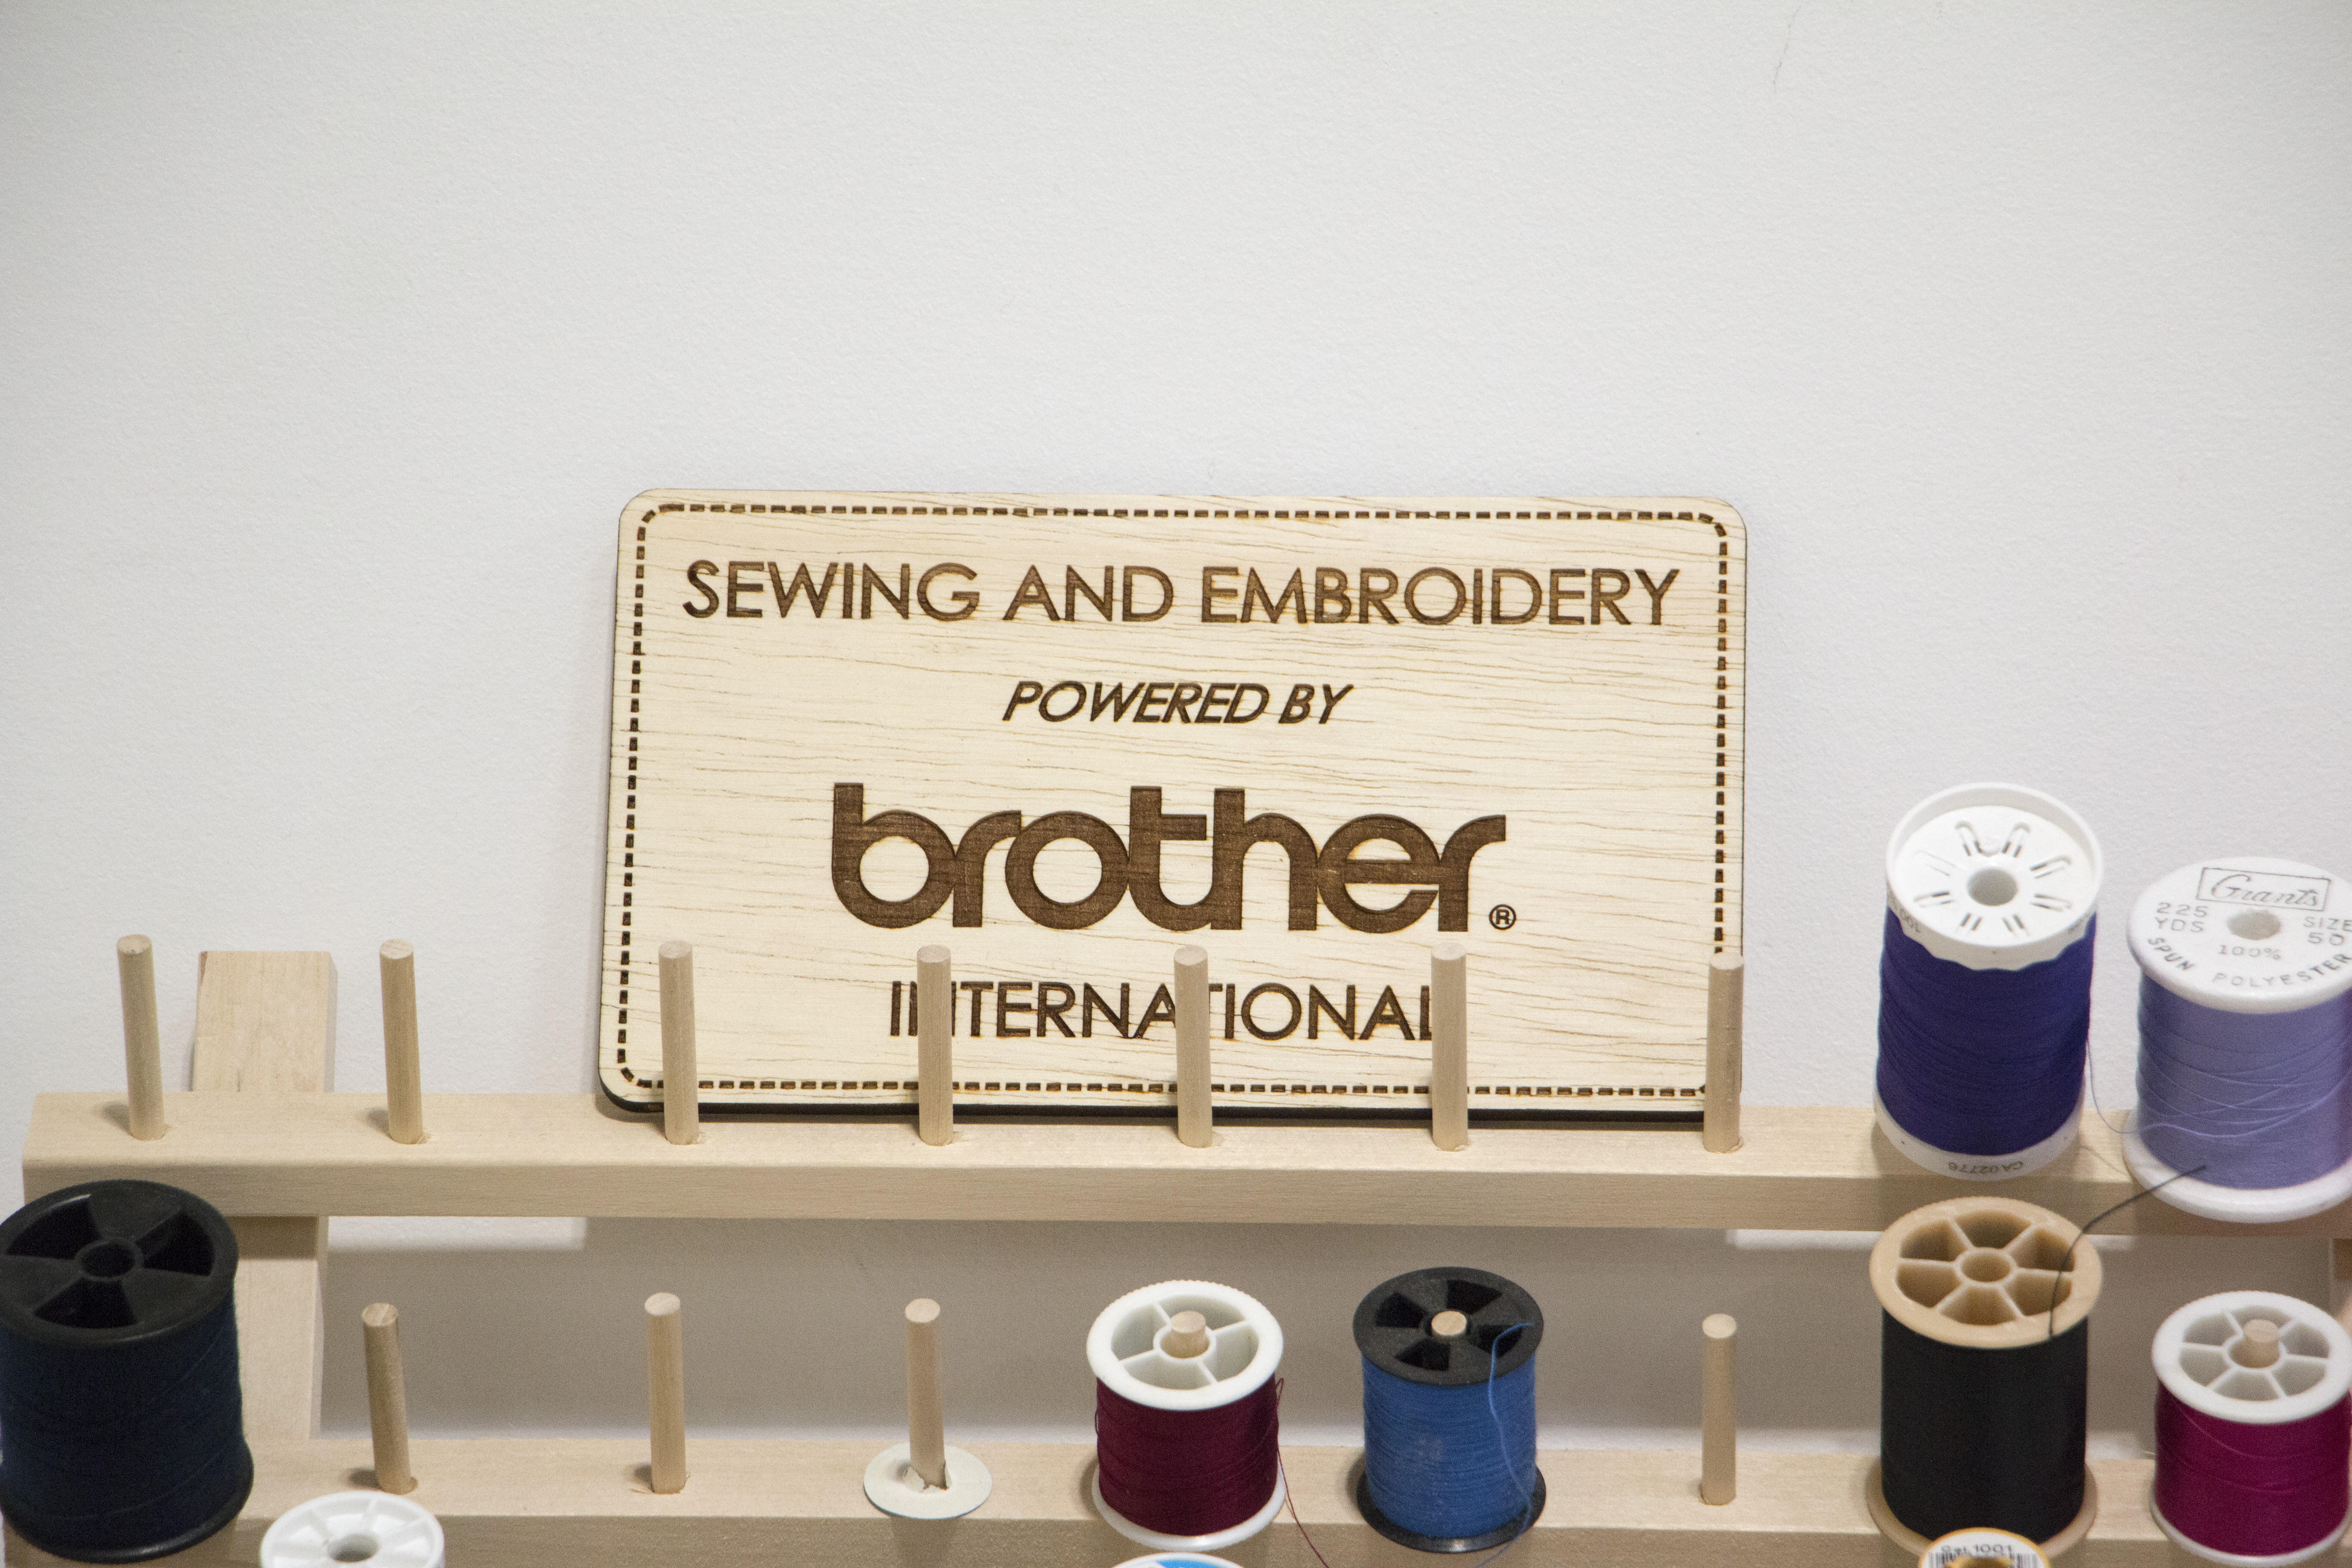 Sewing and Embroidery powered by Brother International